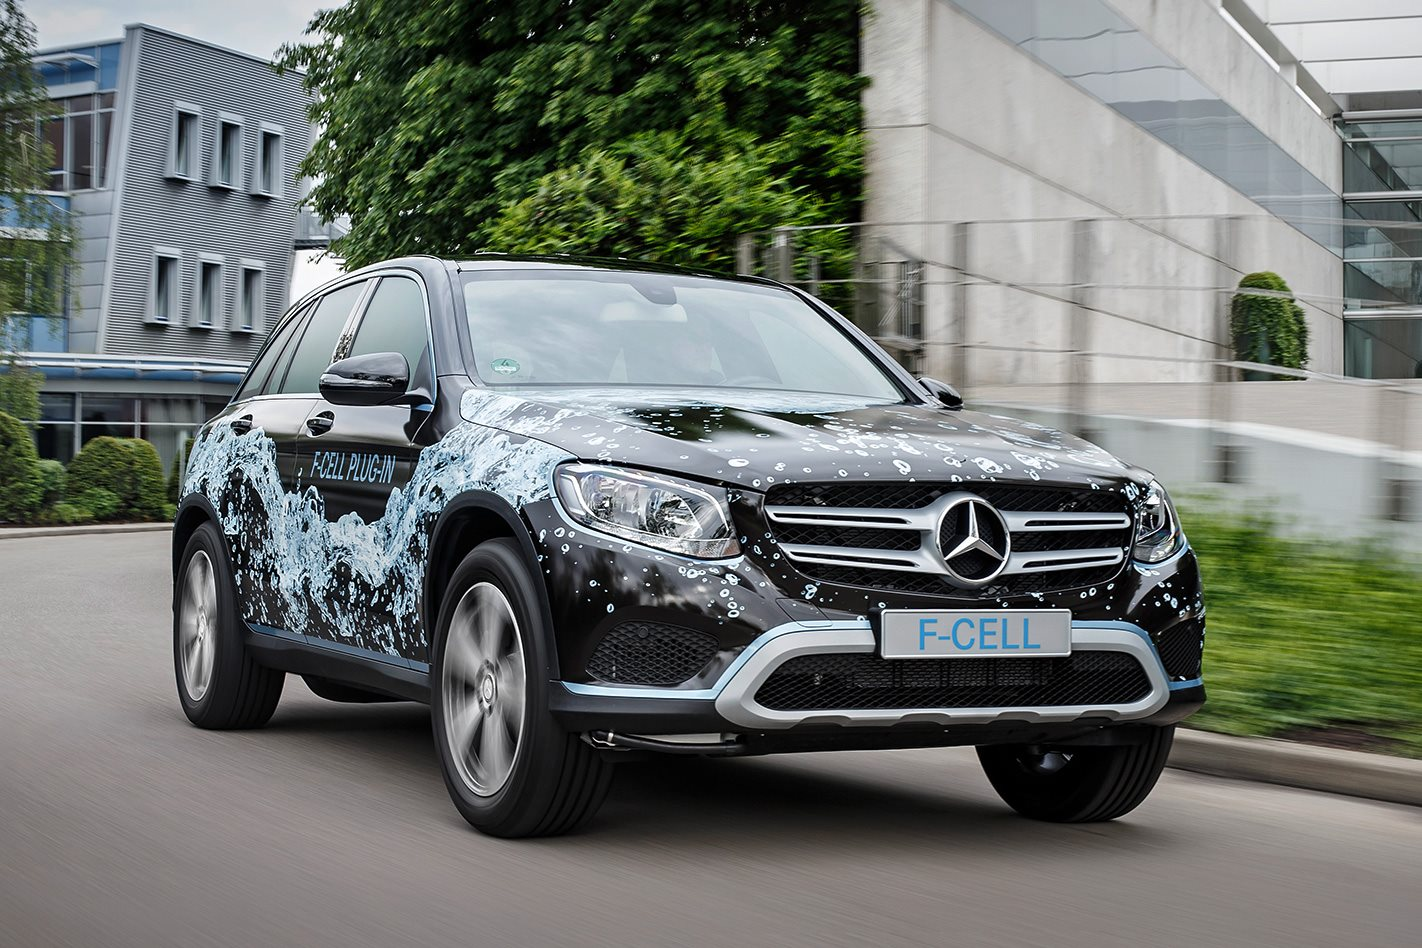 2018 Mercedes-Benz GLC fuel cell prototype